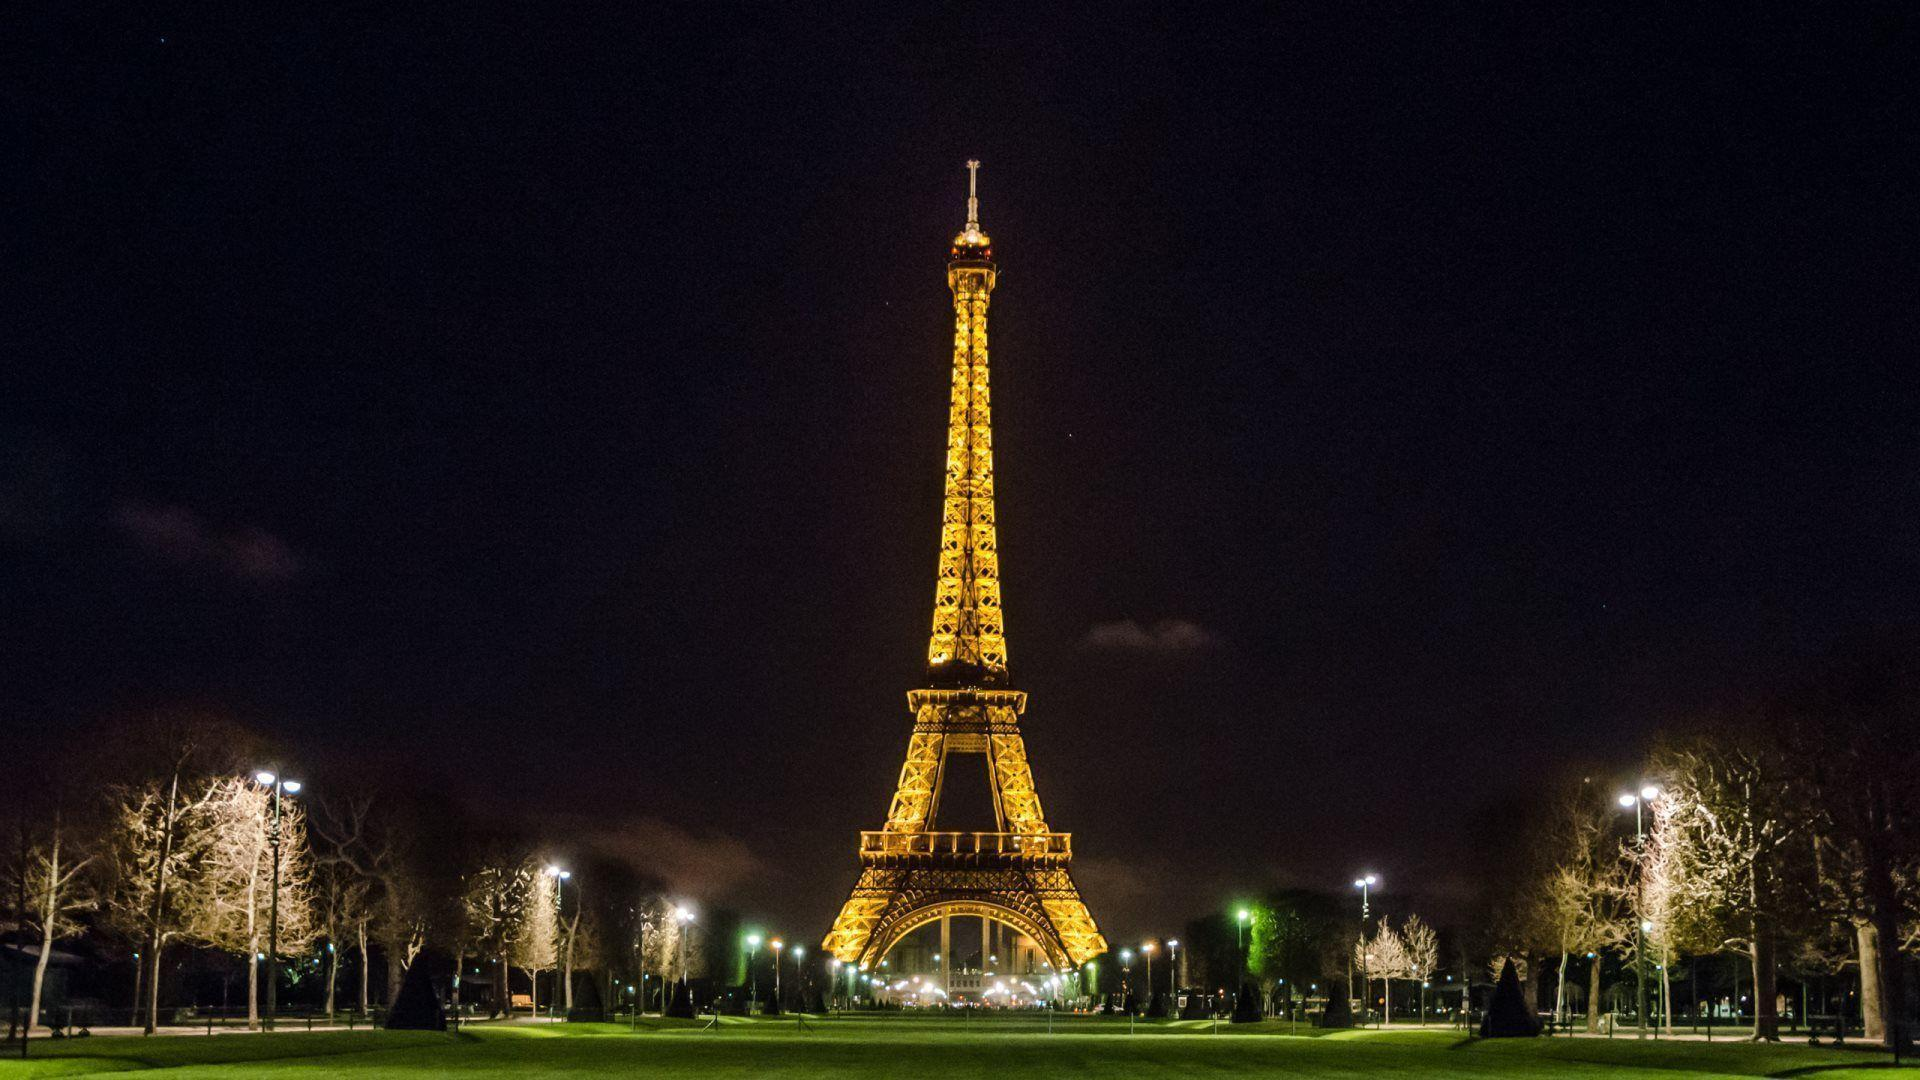 eiffel tower wallpaper - photo #25